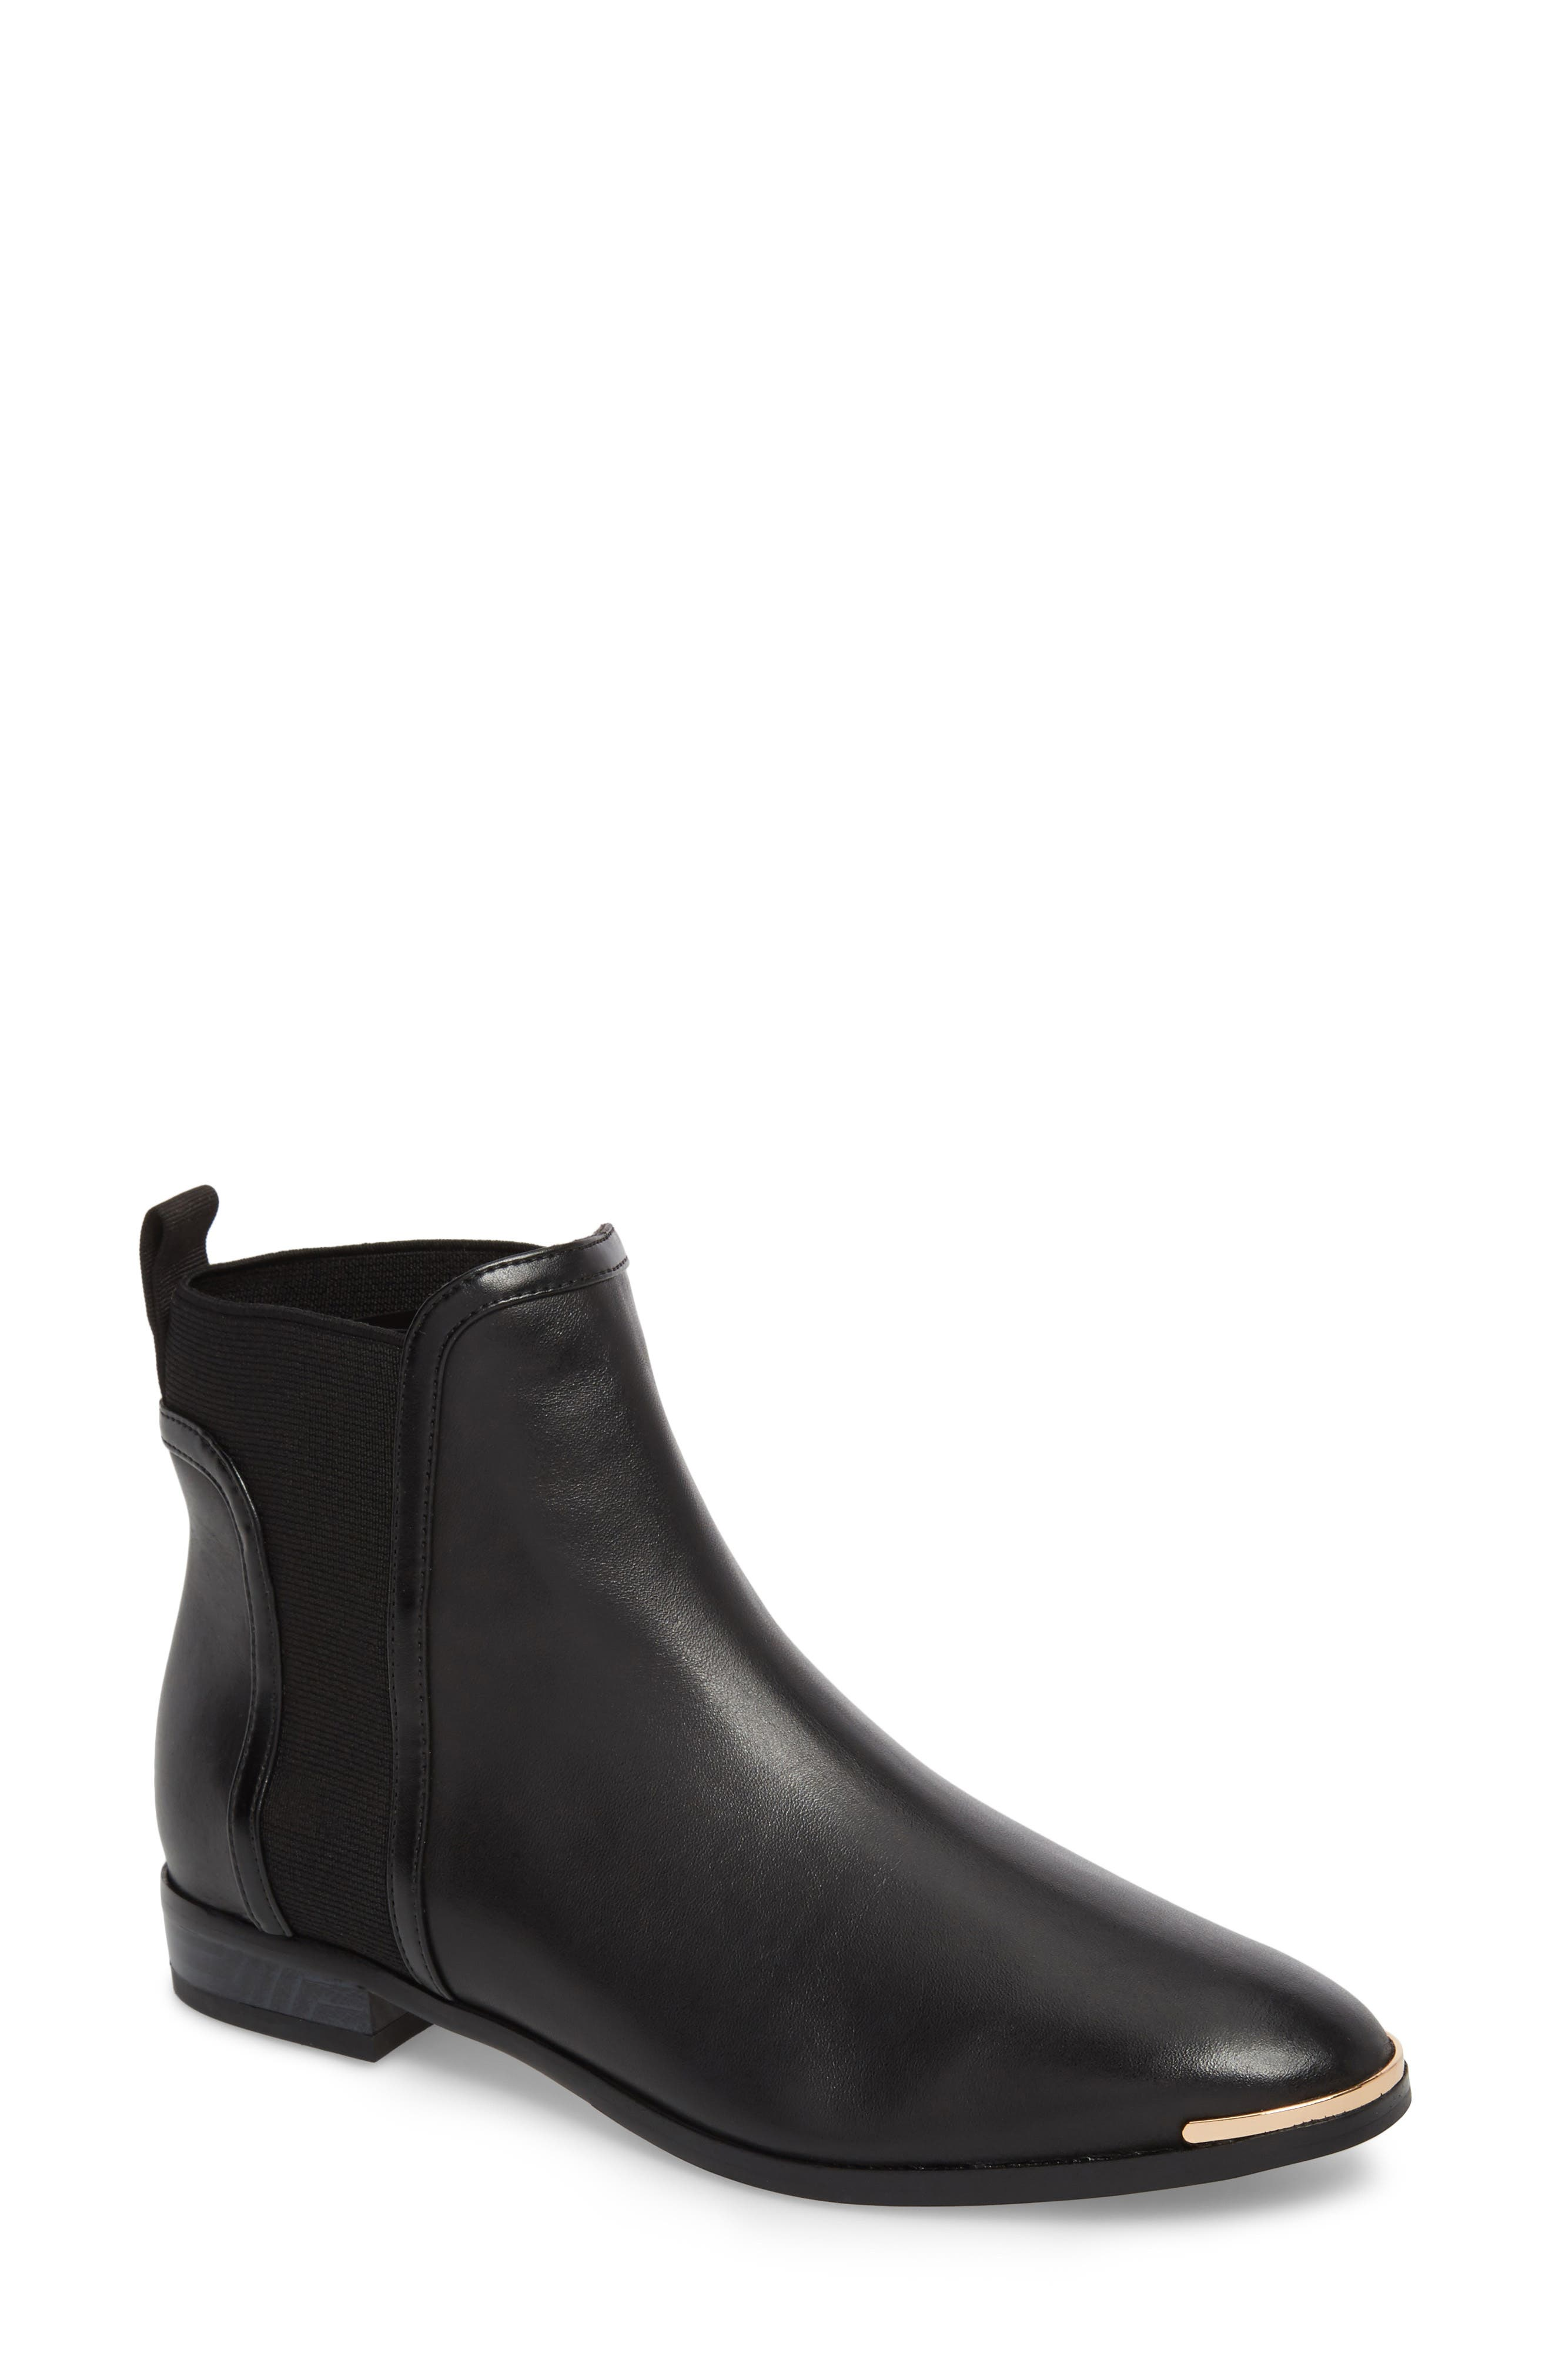 Kerei Chelsea Boot,                         Main,                         color, 001